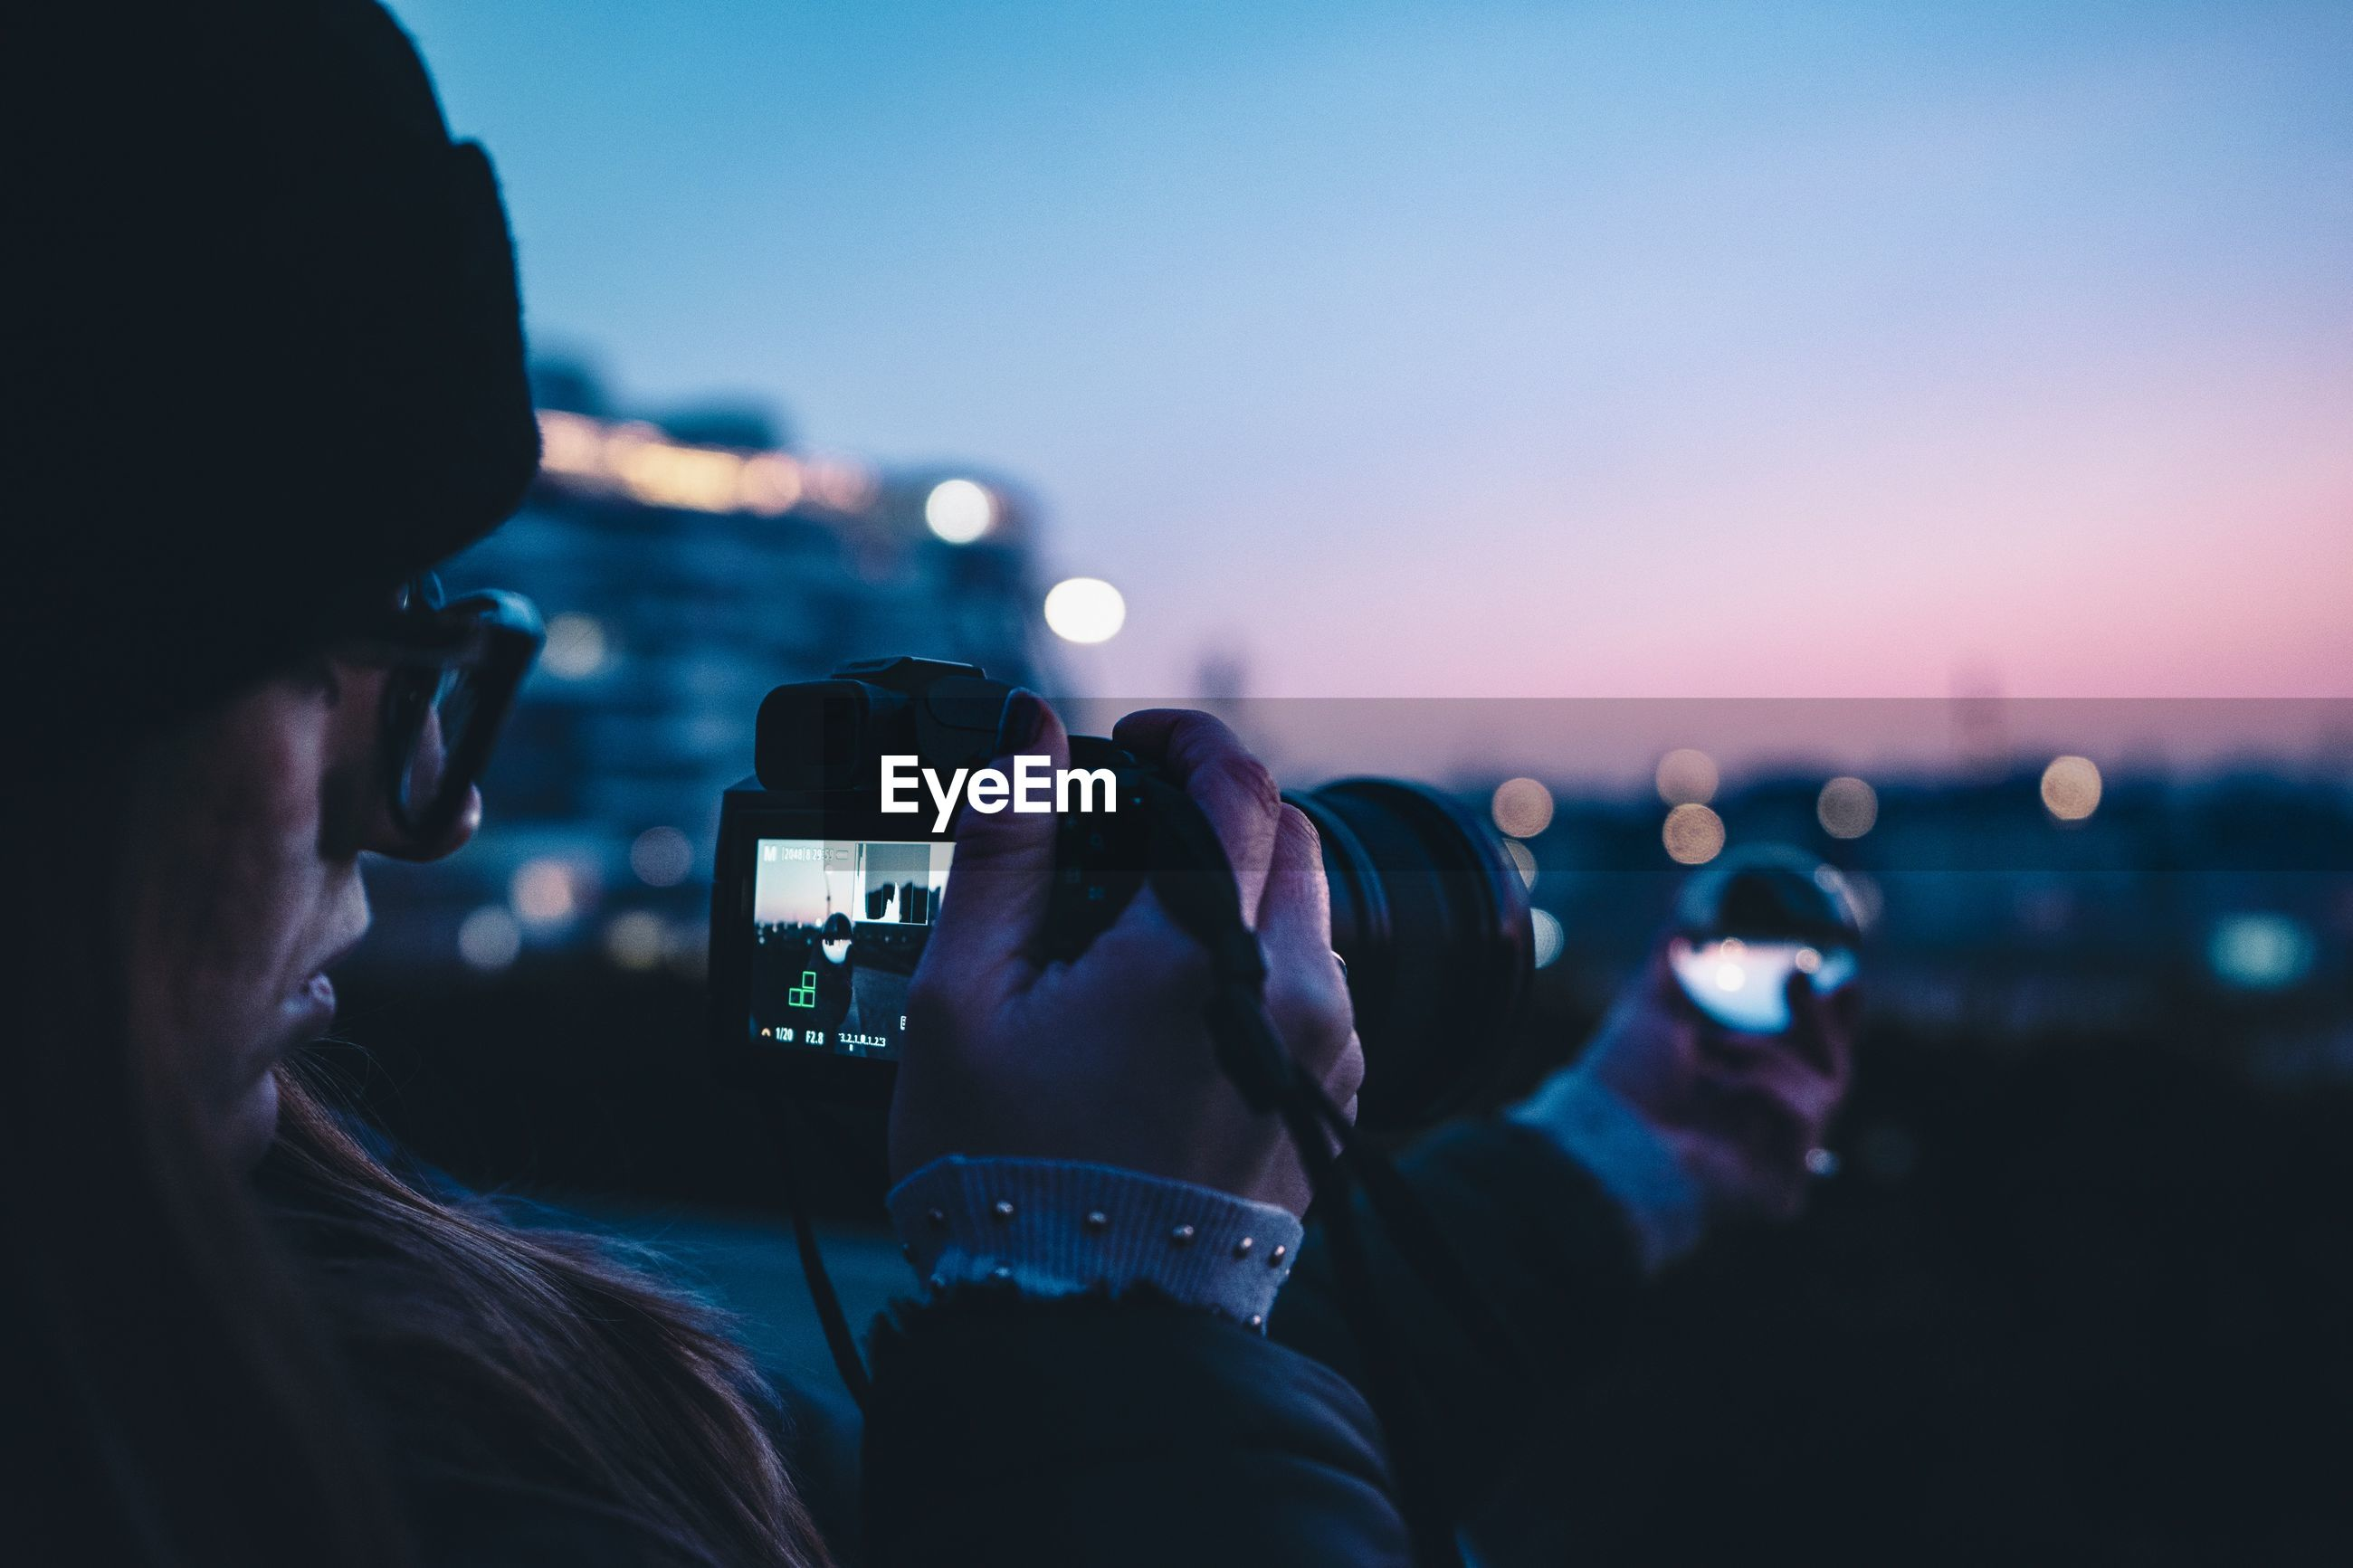 technology, wireless technology, photography themes, activity, real people, photographing, smart phone, portable information device, mobile phone, holding, leisure activity, sky, communication, lifestyles, people, illuminated, screen, night, connection, digital camera, outdoors, nightlife